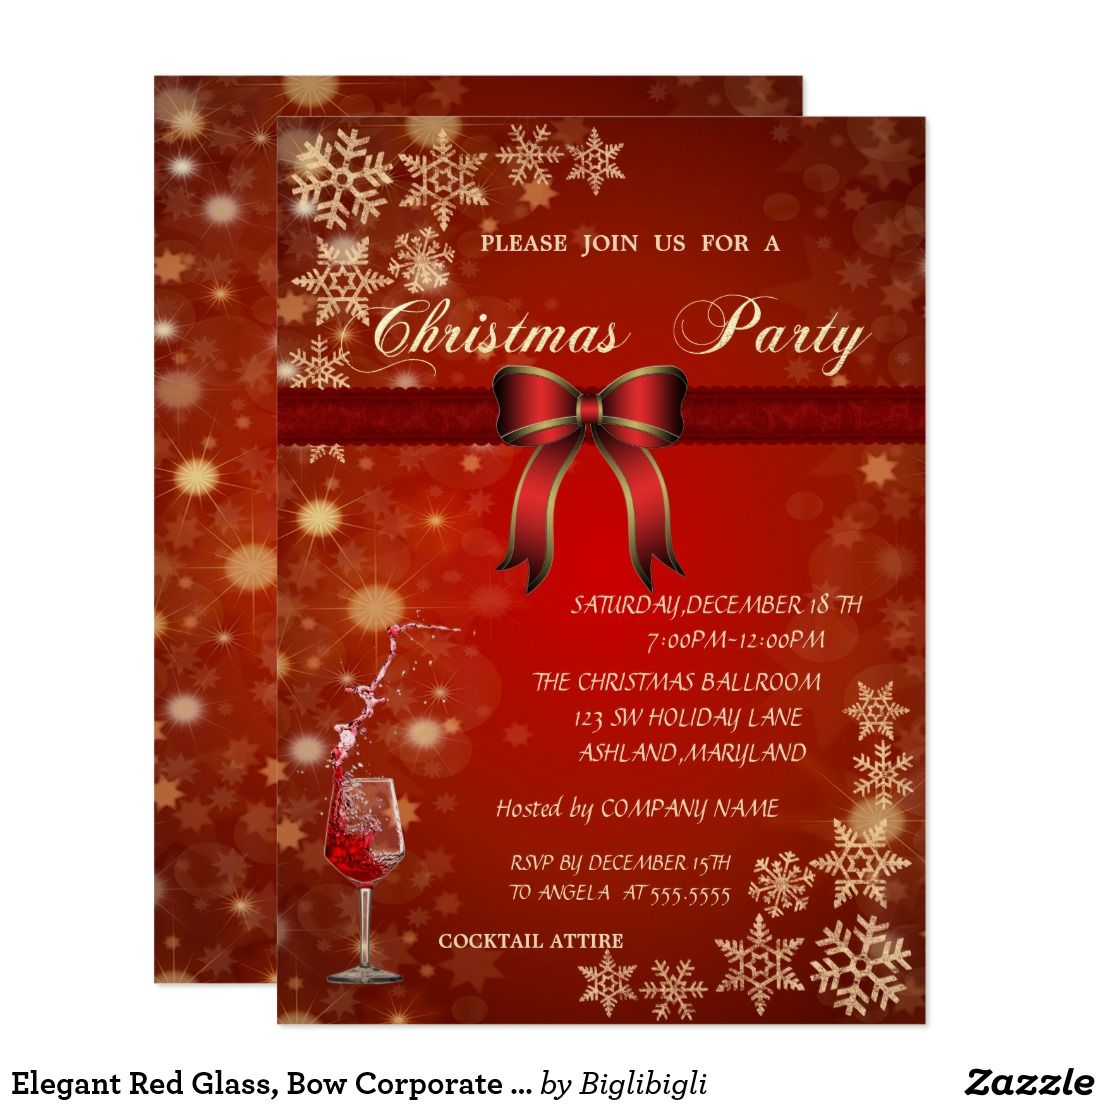 Elegant Red Glass Bow Corporate Christmas Party Invitation